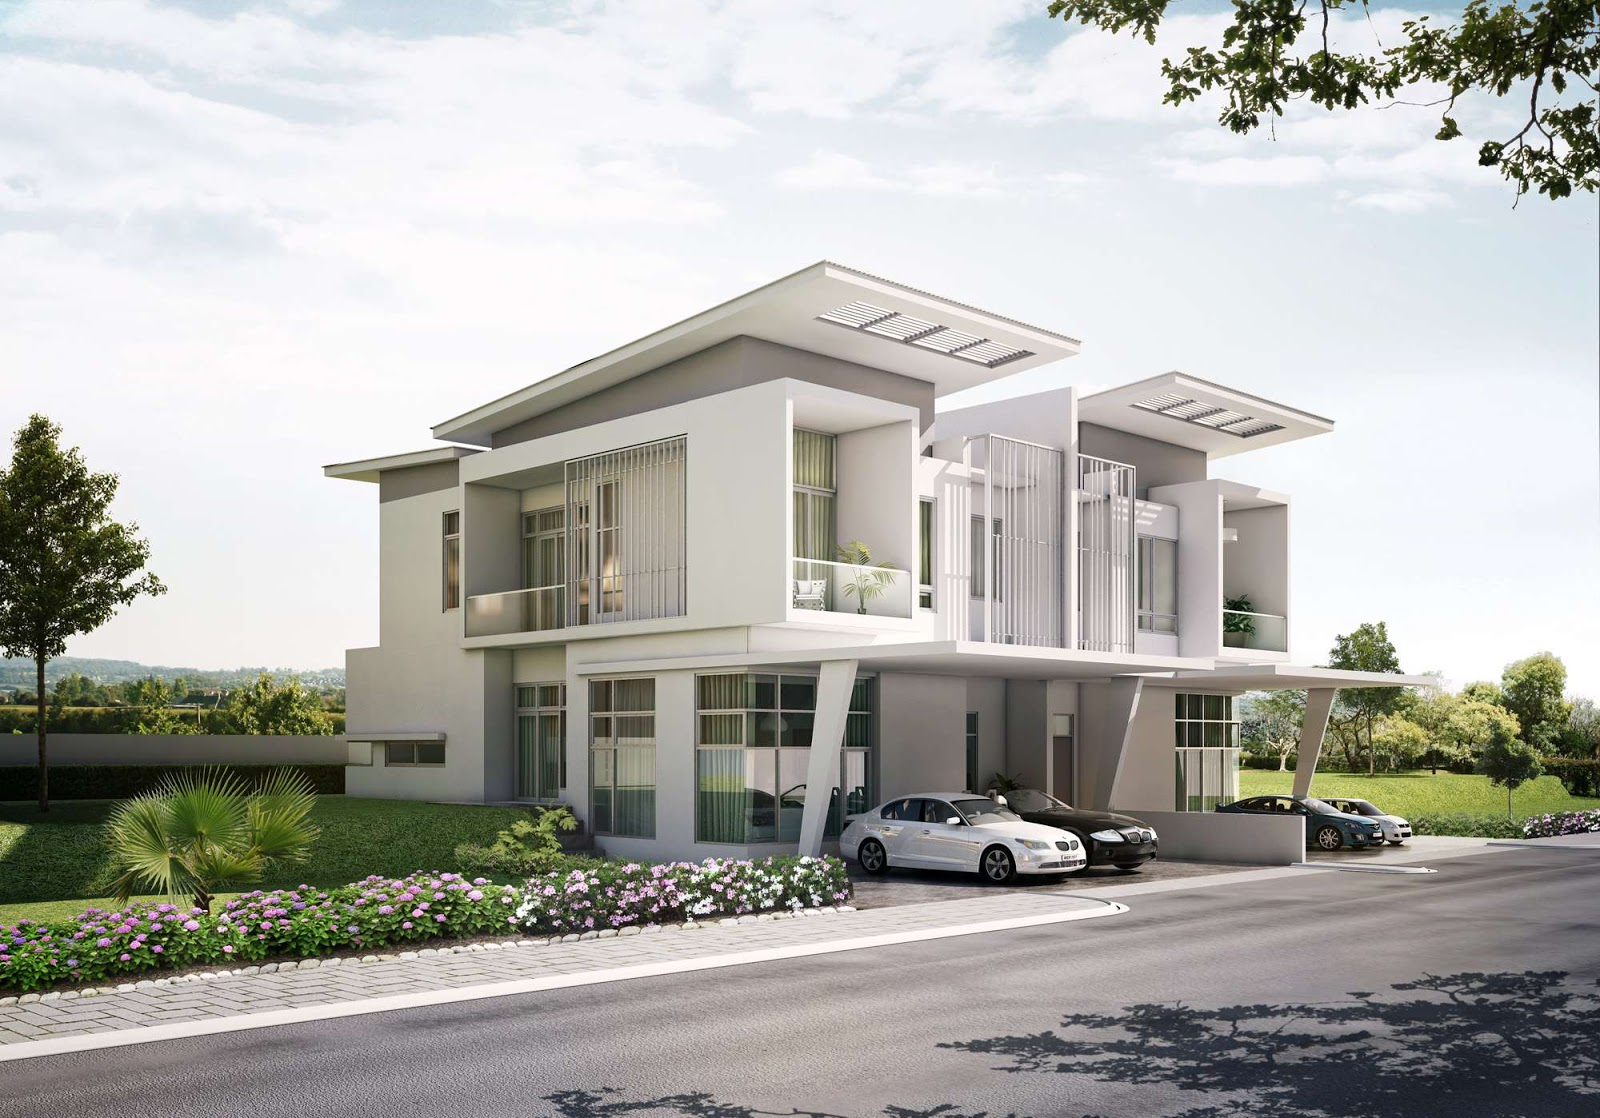 New home designs latest.: Singapore modern homes exterior designs.: shoaibnzm-home-design.blogspot.com/2013/07/singapore-modern-homes...